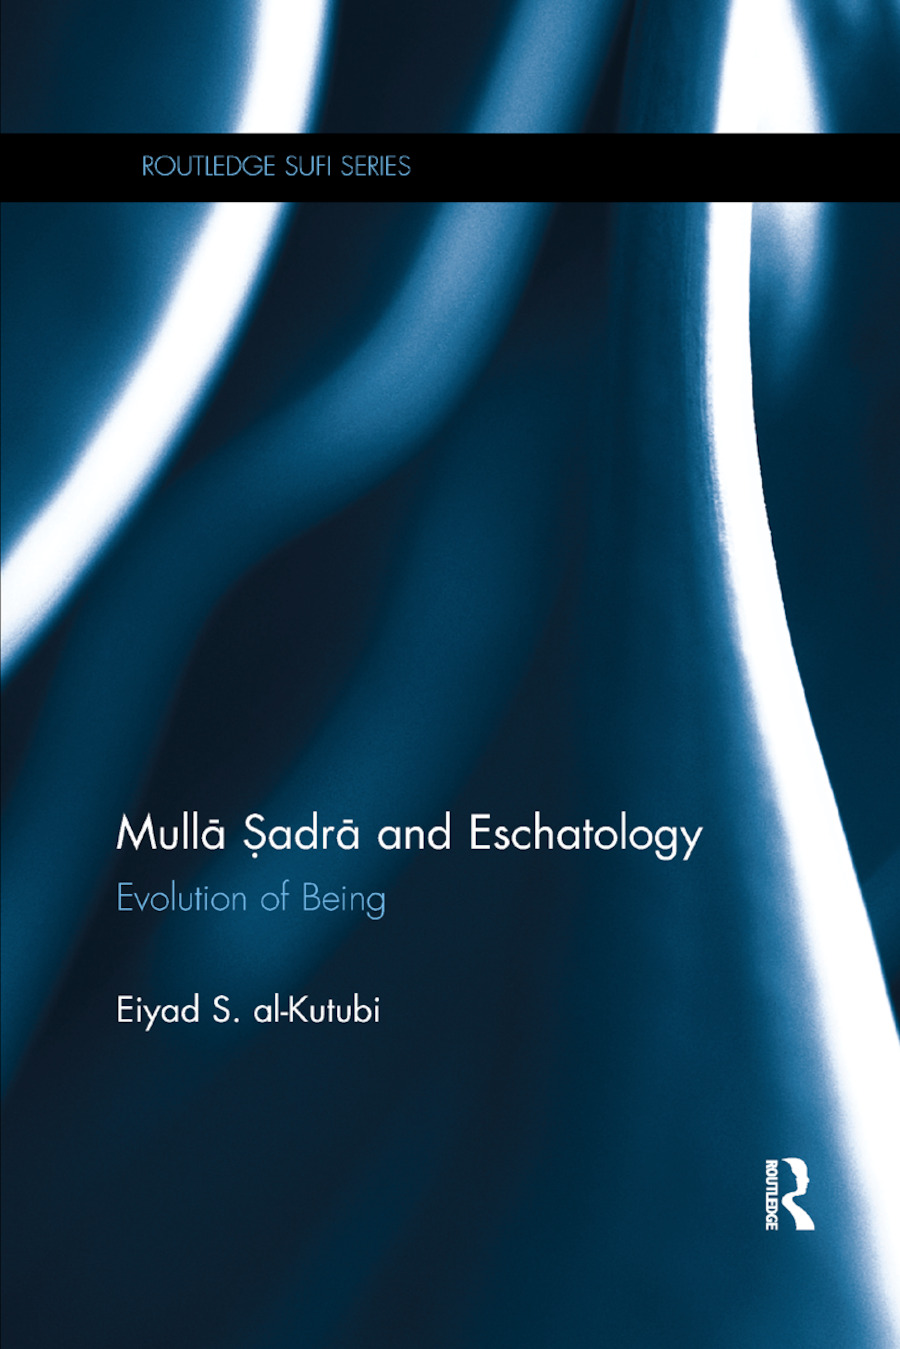 Mulla Sadra and Eschatology: Evolution of Being book cover